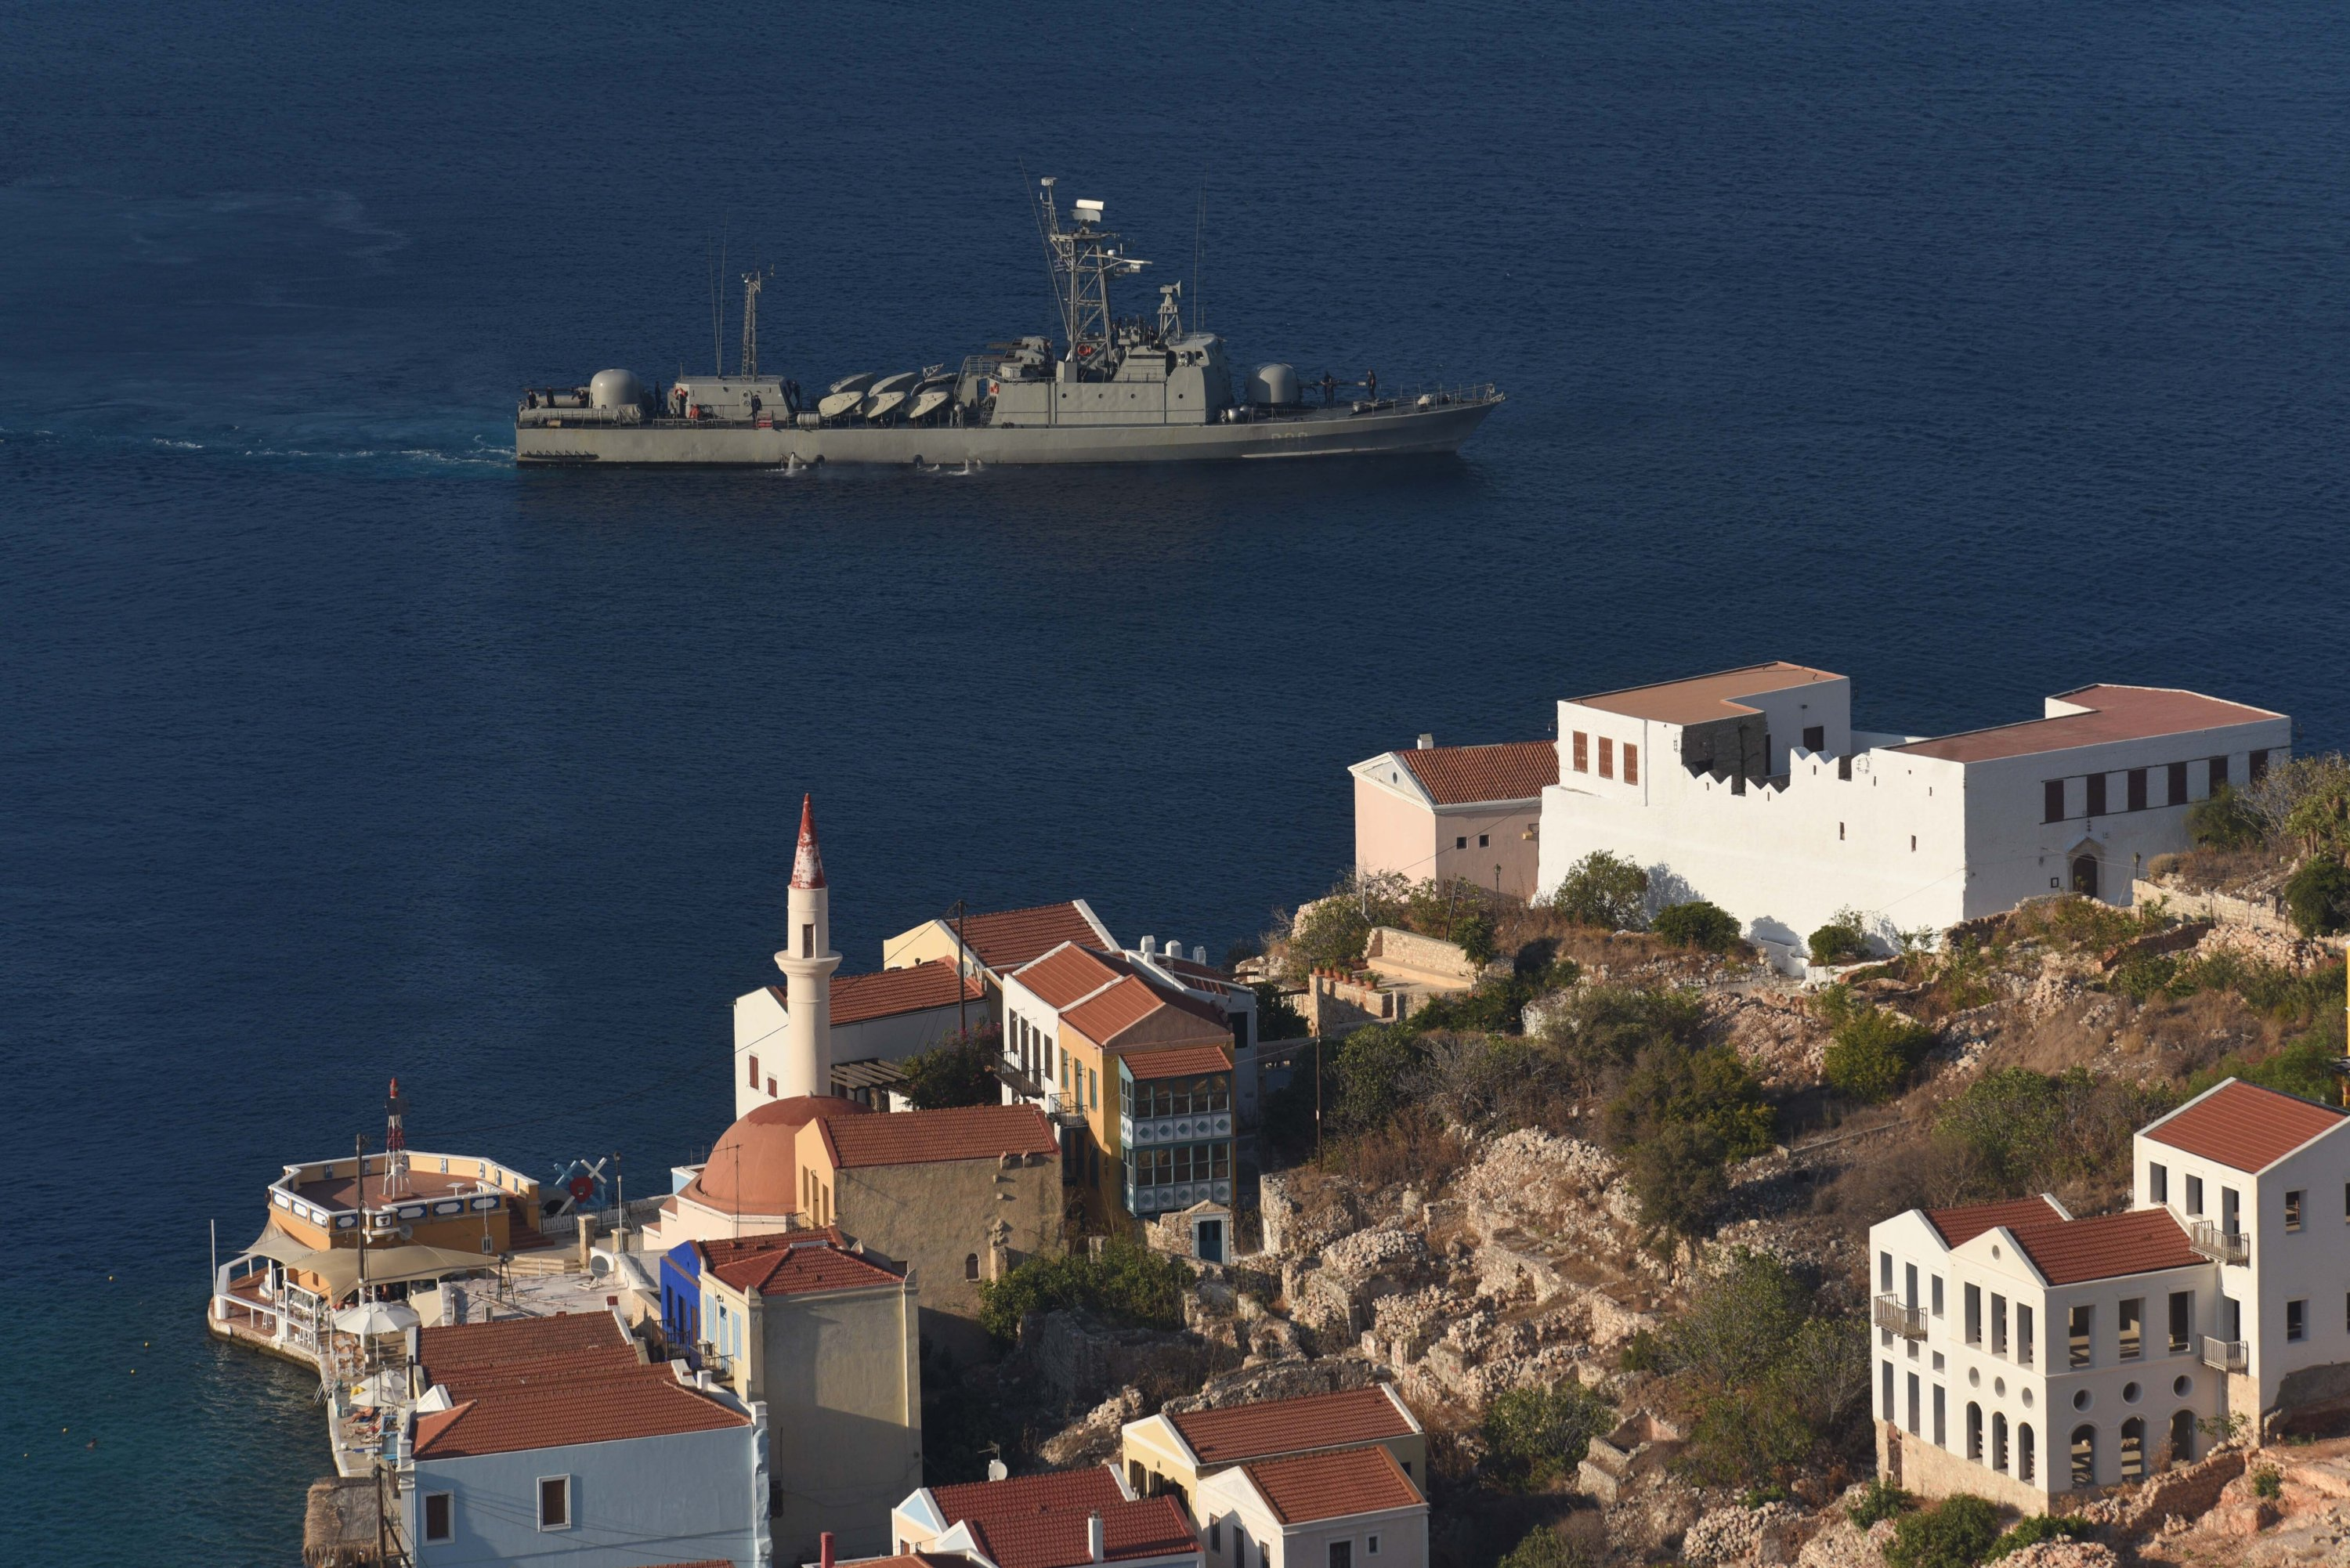 A Greek navy warship heads off the island of Kastellorizo (Megisti-Meis), with the coast of Turkey visible far in the background, Greece, Sept. 8, 2020. (Reuters Photo)